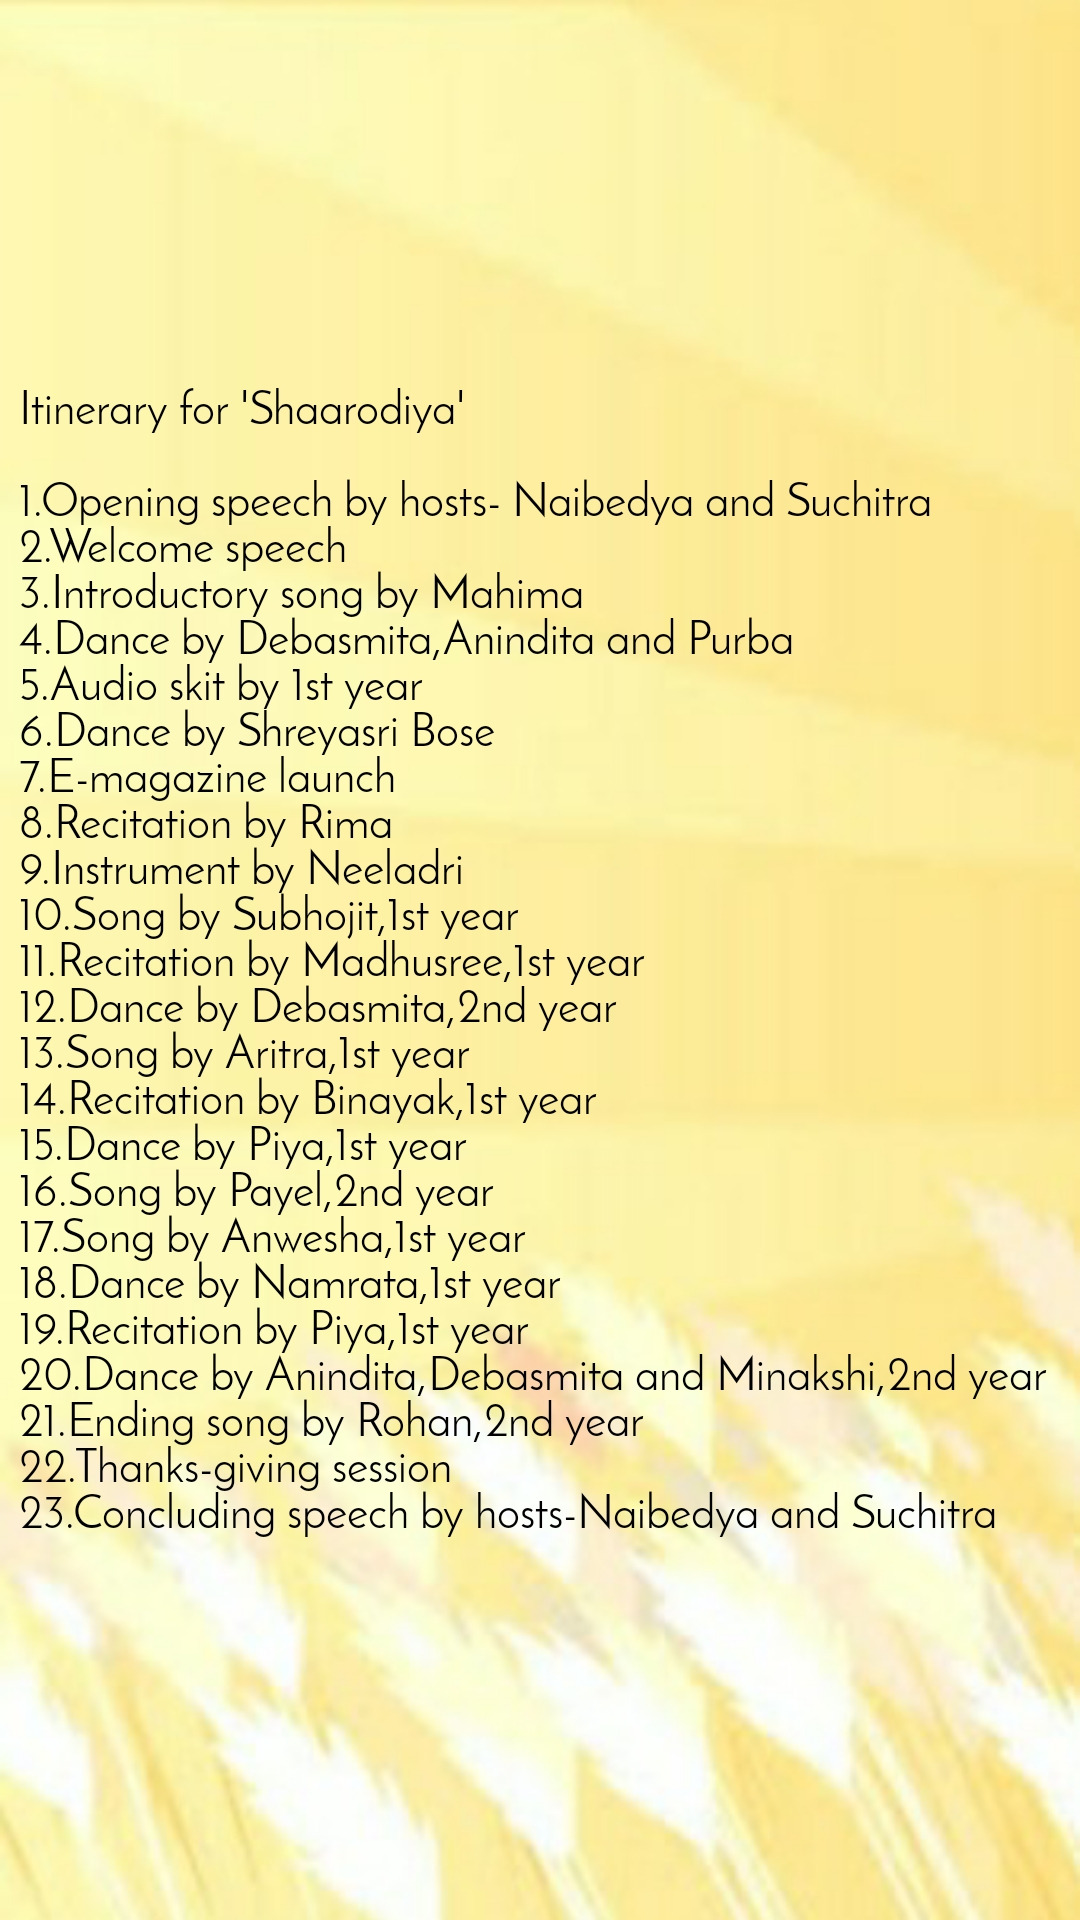 Itinerary for 'Shaarodiya'  1.Opening speech by hosts- Naibedya and Suchitra 2.Welcome speech 3.Introductory song by Mahima 4.Dance by Debasmita,Anindita and Purba 5.Audio skit by 1st year 6.Dance by Shreyasri Bose 7.E-magazine launch 8.Recitation by Rima 9.Instrument by Neeladri 10.Song by Subhojit,1st year 11.Recitation by Madhusree,1st year 12.Dance by Debasmita,2nd year 13.Song by Aritra,1st year 14.Recitation by Binayak,1st year 15.Dance by Piya,1st year 16.Song by Payel,2nd year 17.Song by Anwesha,1st year 18.Dance by Namrata,1st year 19.Recitation by Piya,1st year 20.Dance by Anindita,Debasmita and Minakshi,2nd year 21.Ending song by Rohan,2nd year 22.Thanks-giving session 23.Concluding speech by hosts-Naibedya and Suchitra